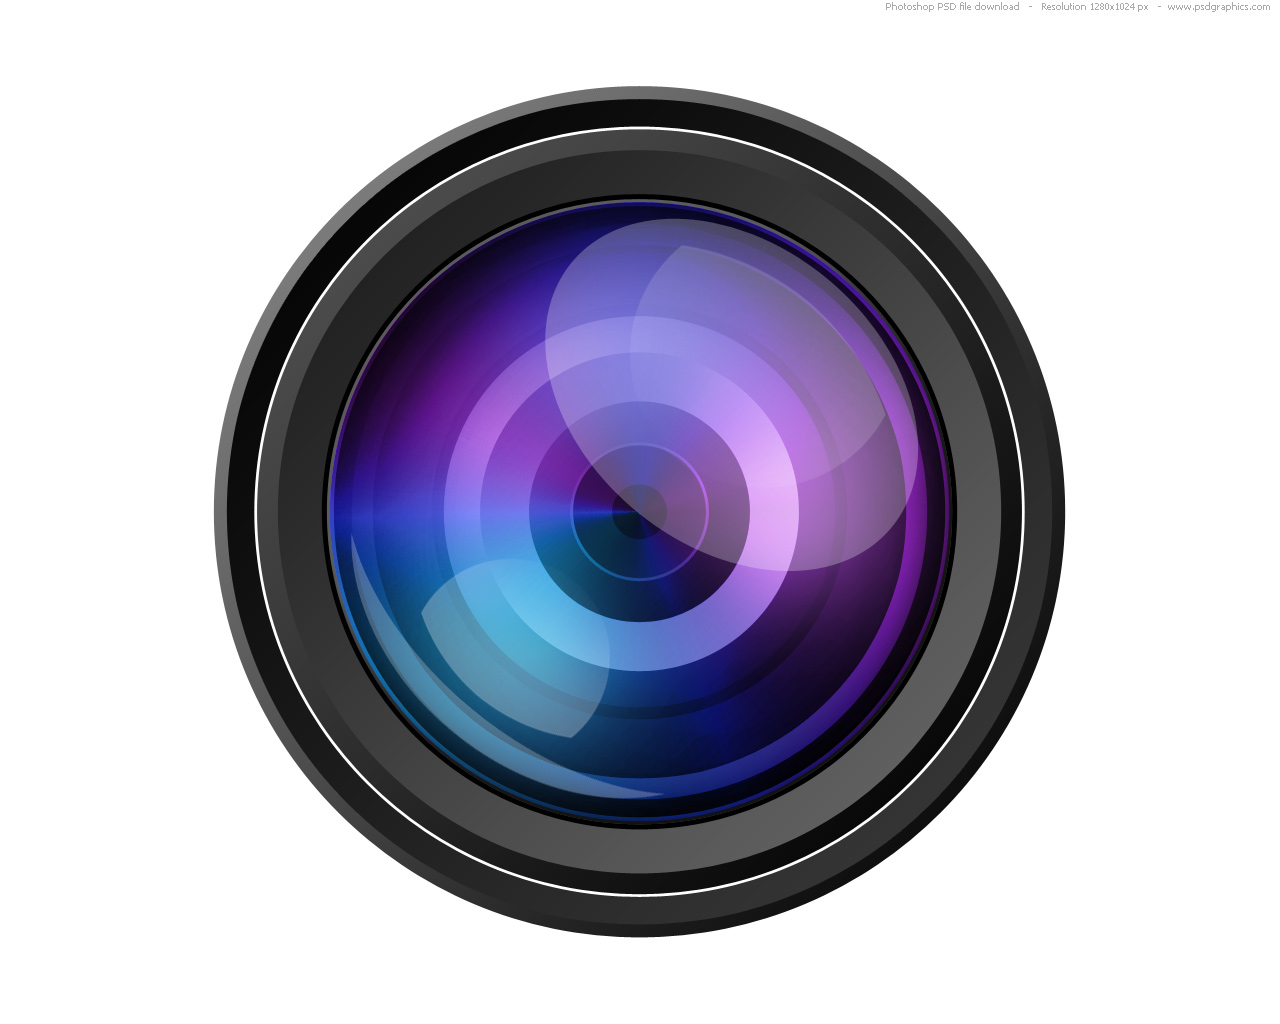 Full Size – JPG Preview: Camera Lens Icon image #62